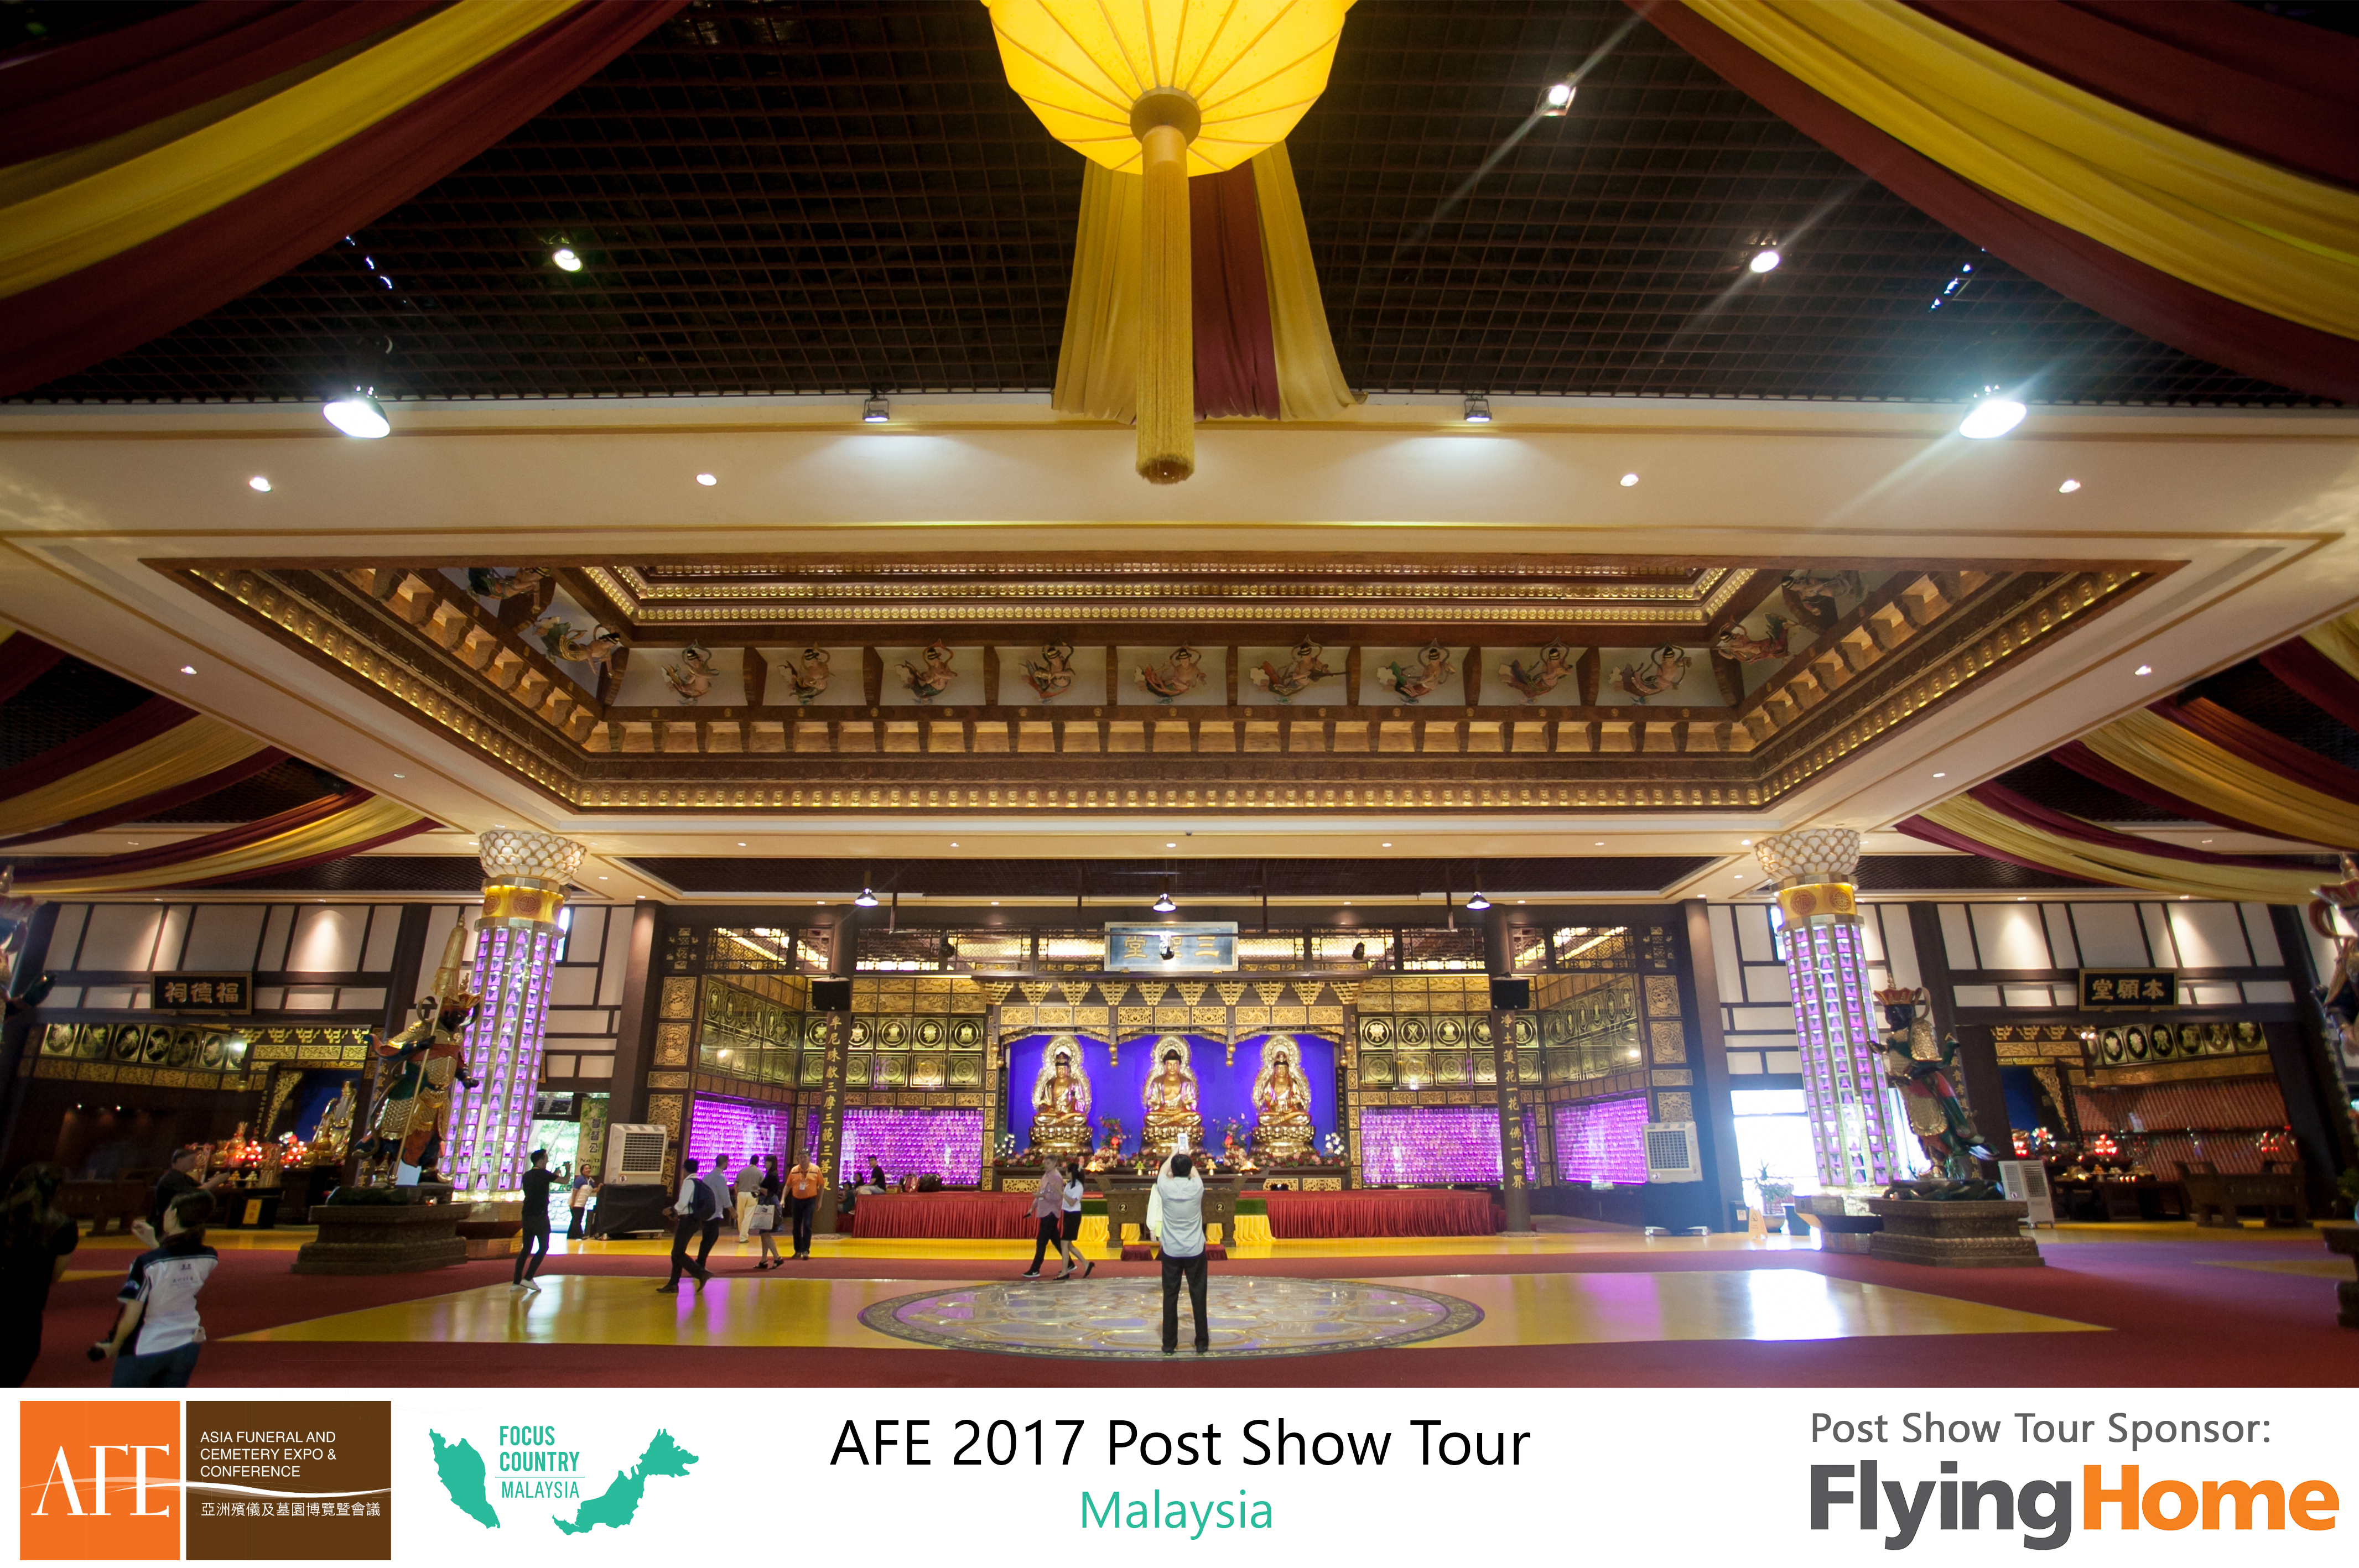 AFE Post Show Tour 2017 Day 2 - 44